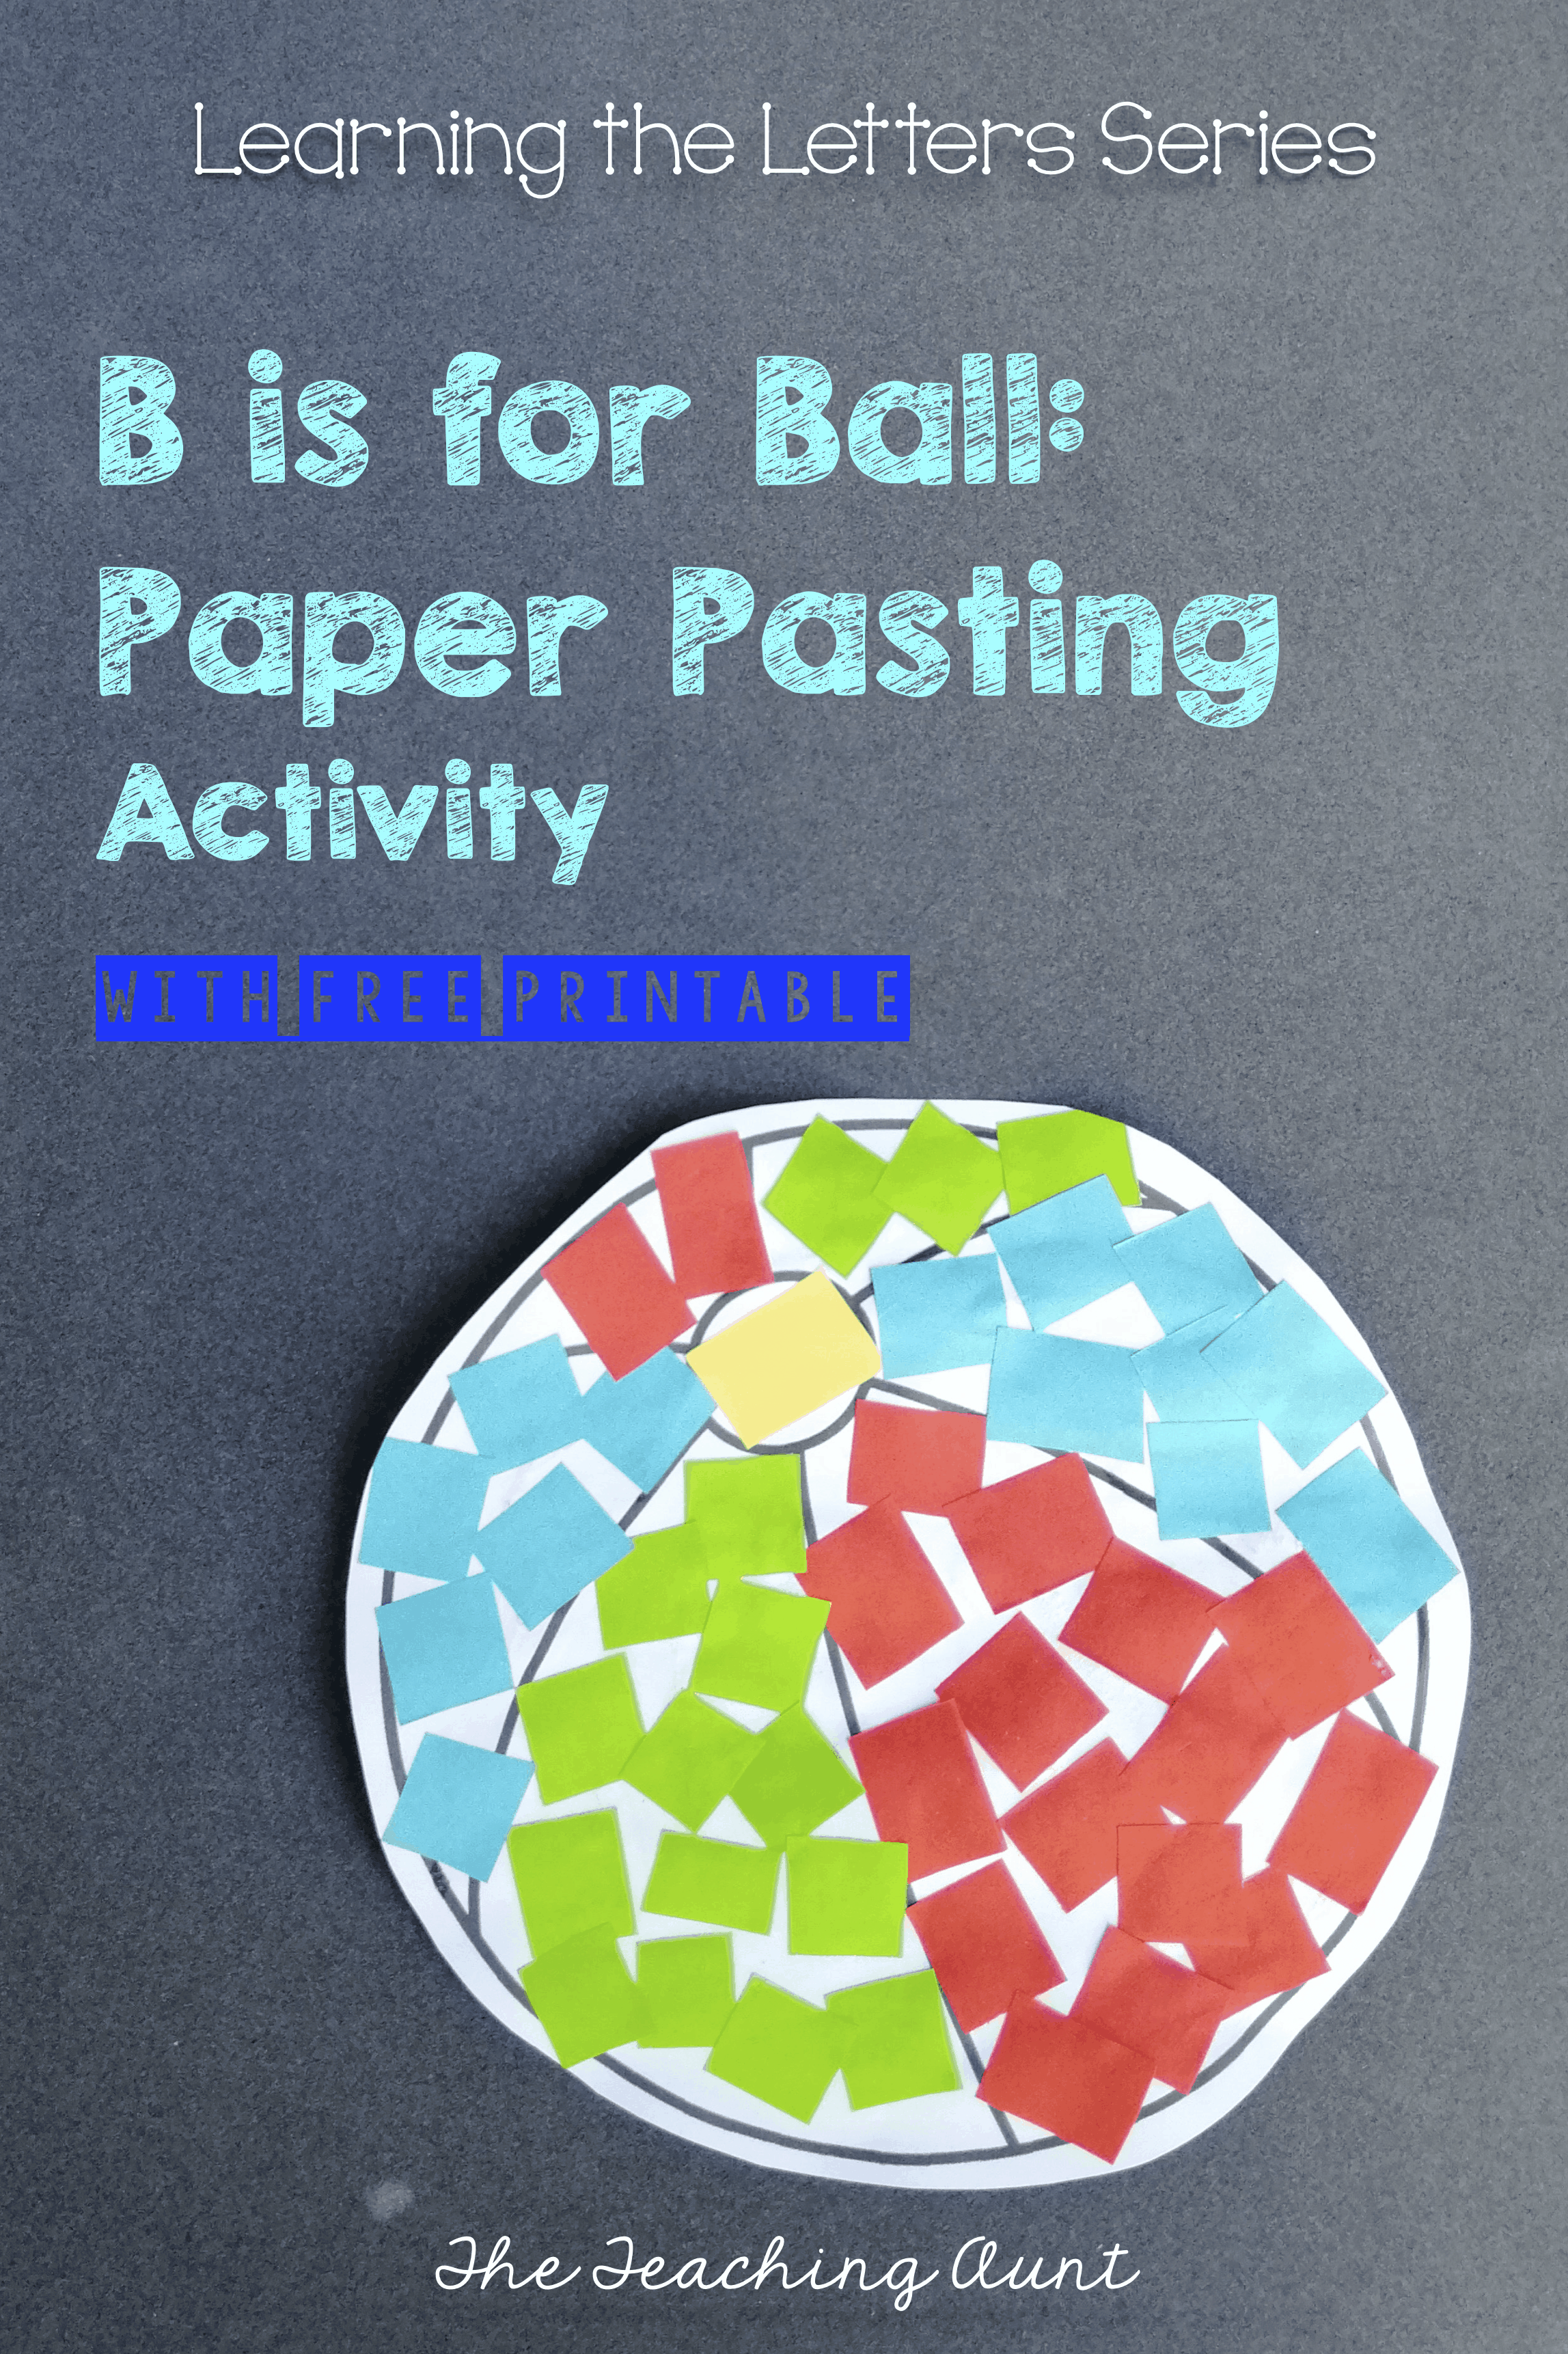 B is for Ball: Paper Pasting Activity